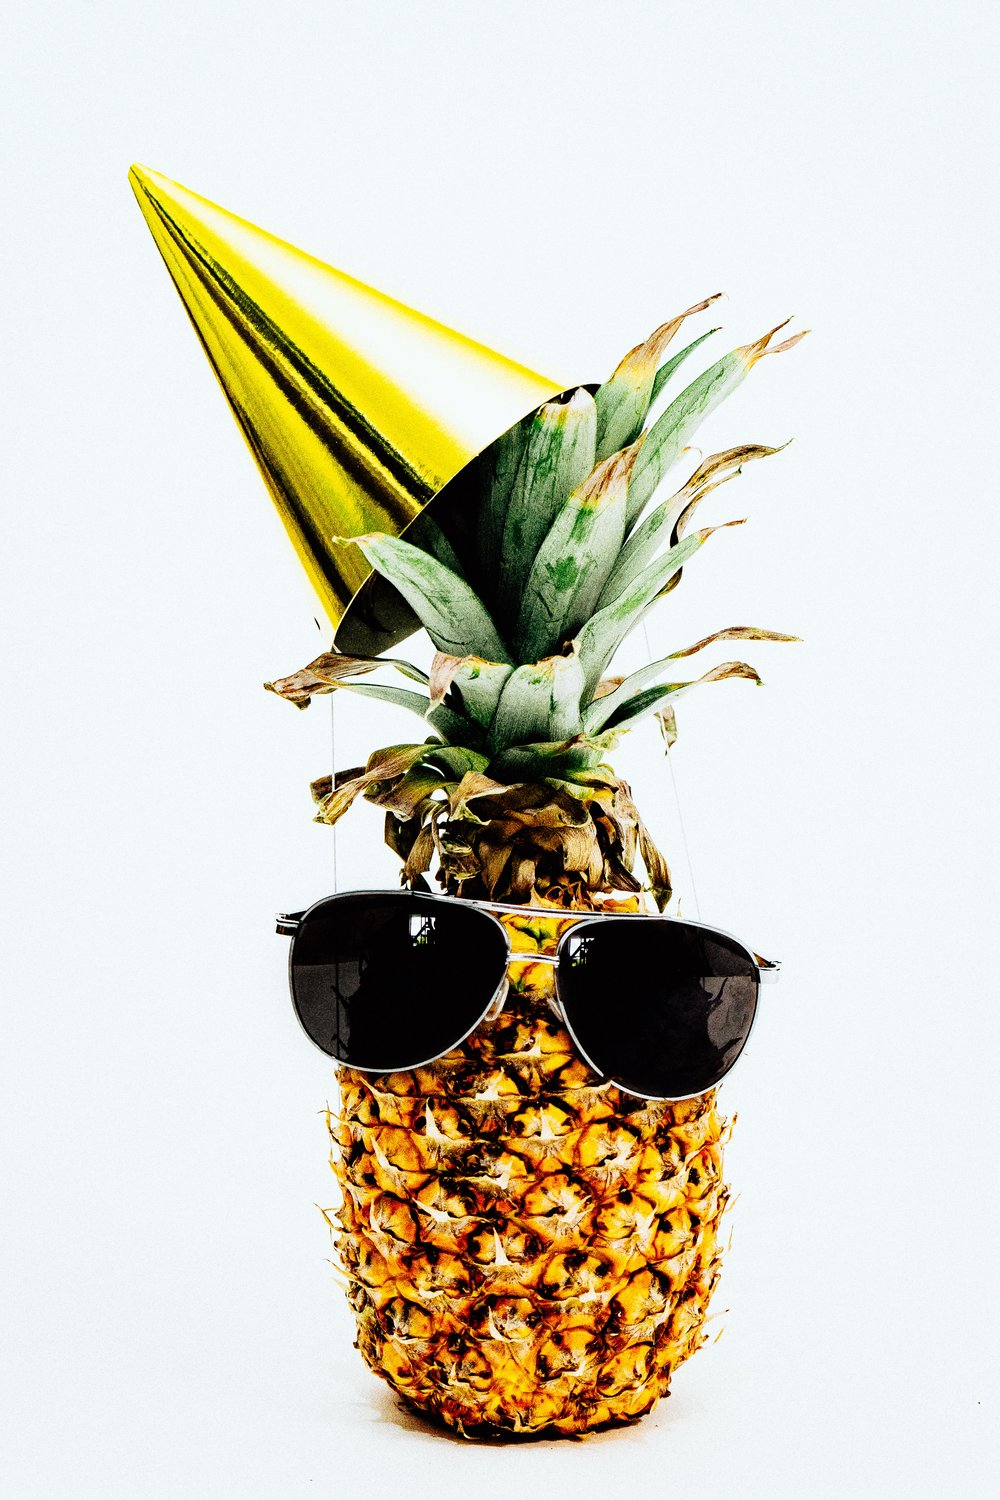 pineapple-supply-co-277364-unsplash.jpg